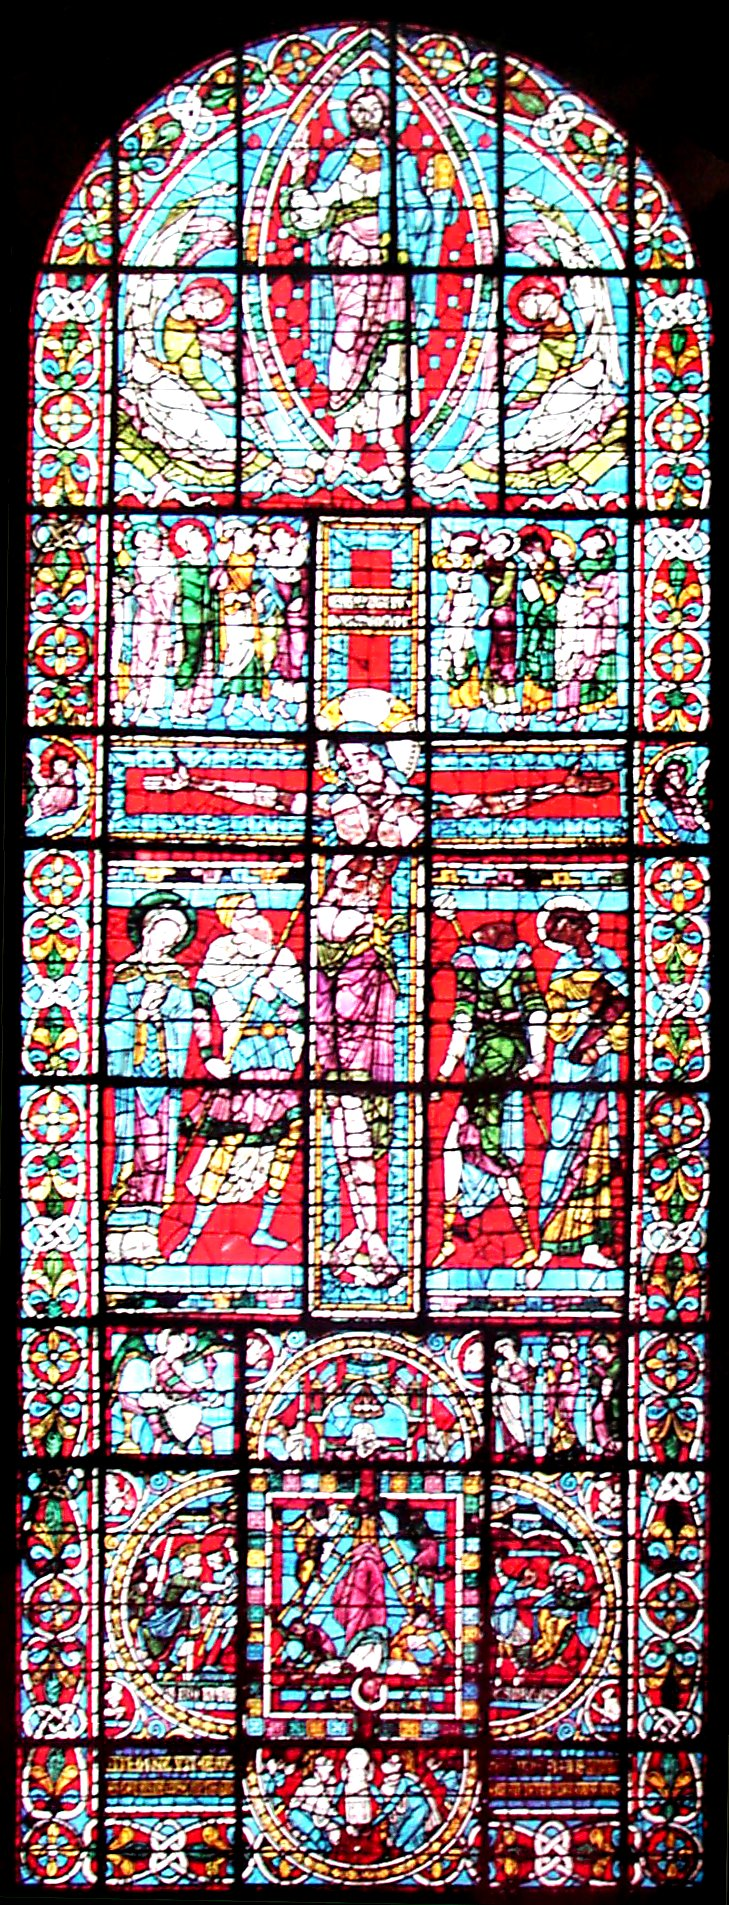 Window of the crucifixion in St Peter's Cathedral, Poitiers. image � abelard.org, 2004